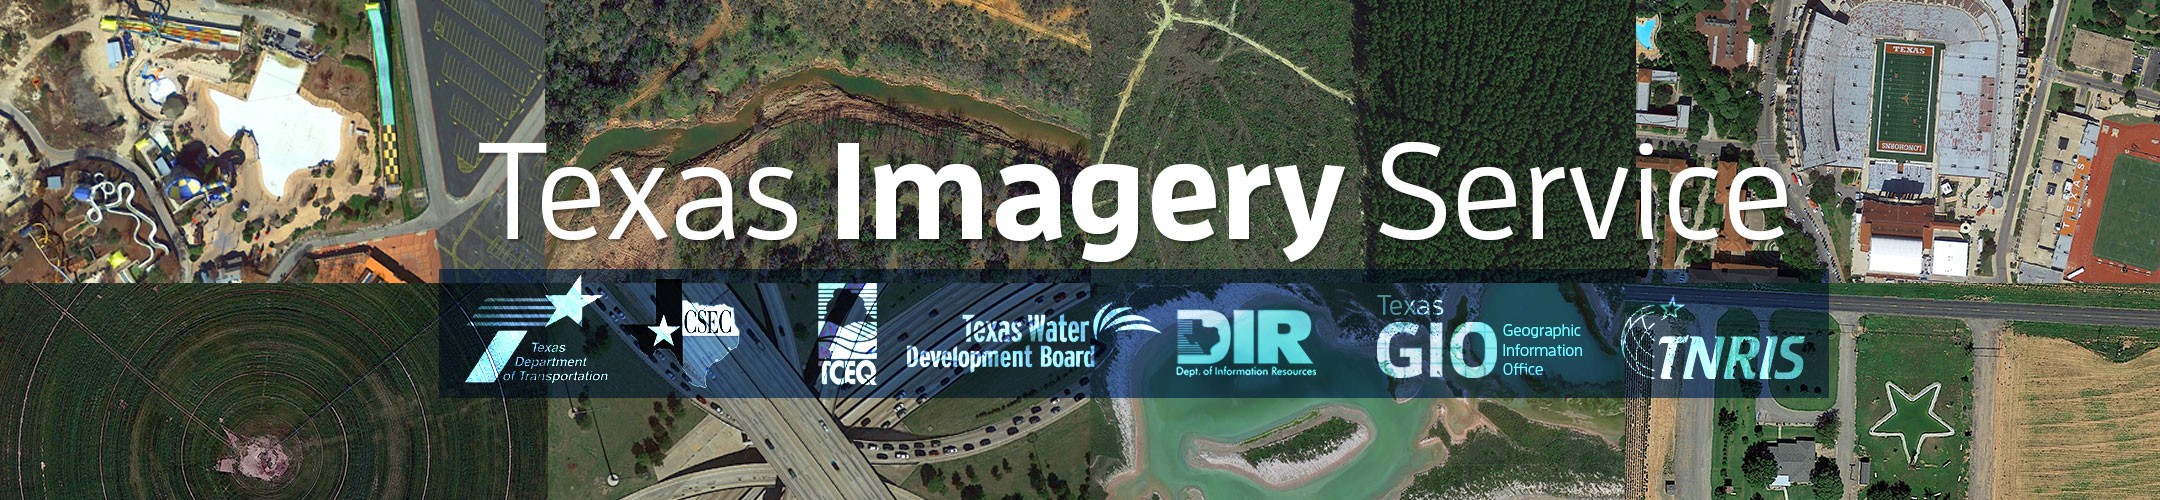 Masthead for Texas Imagery Service